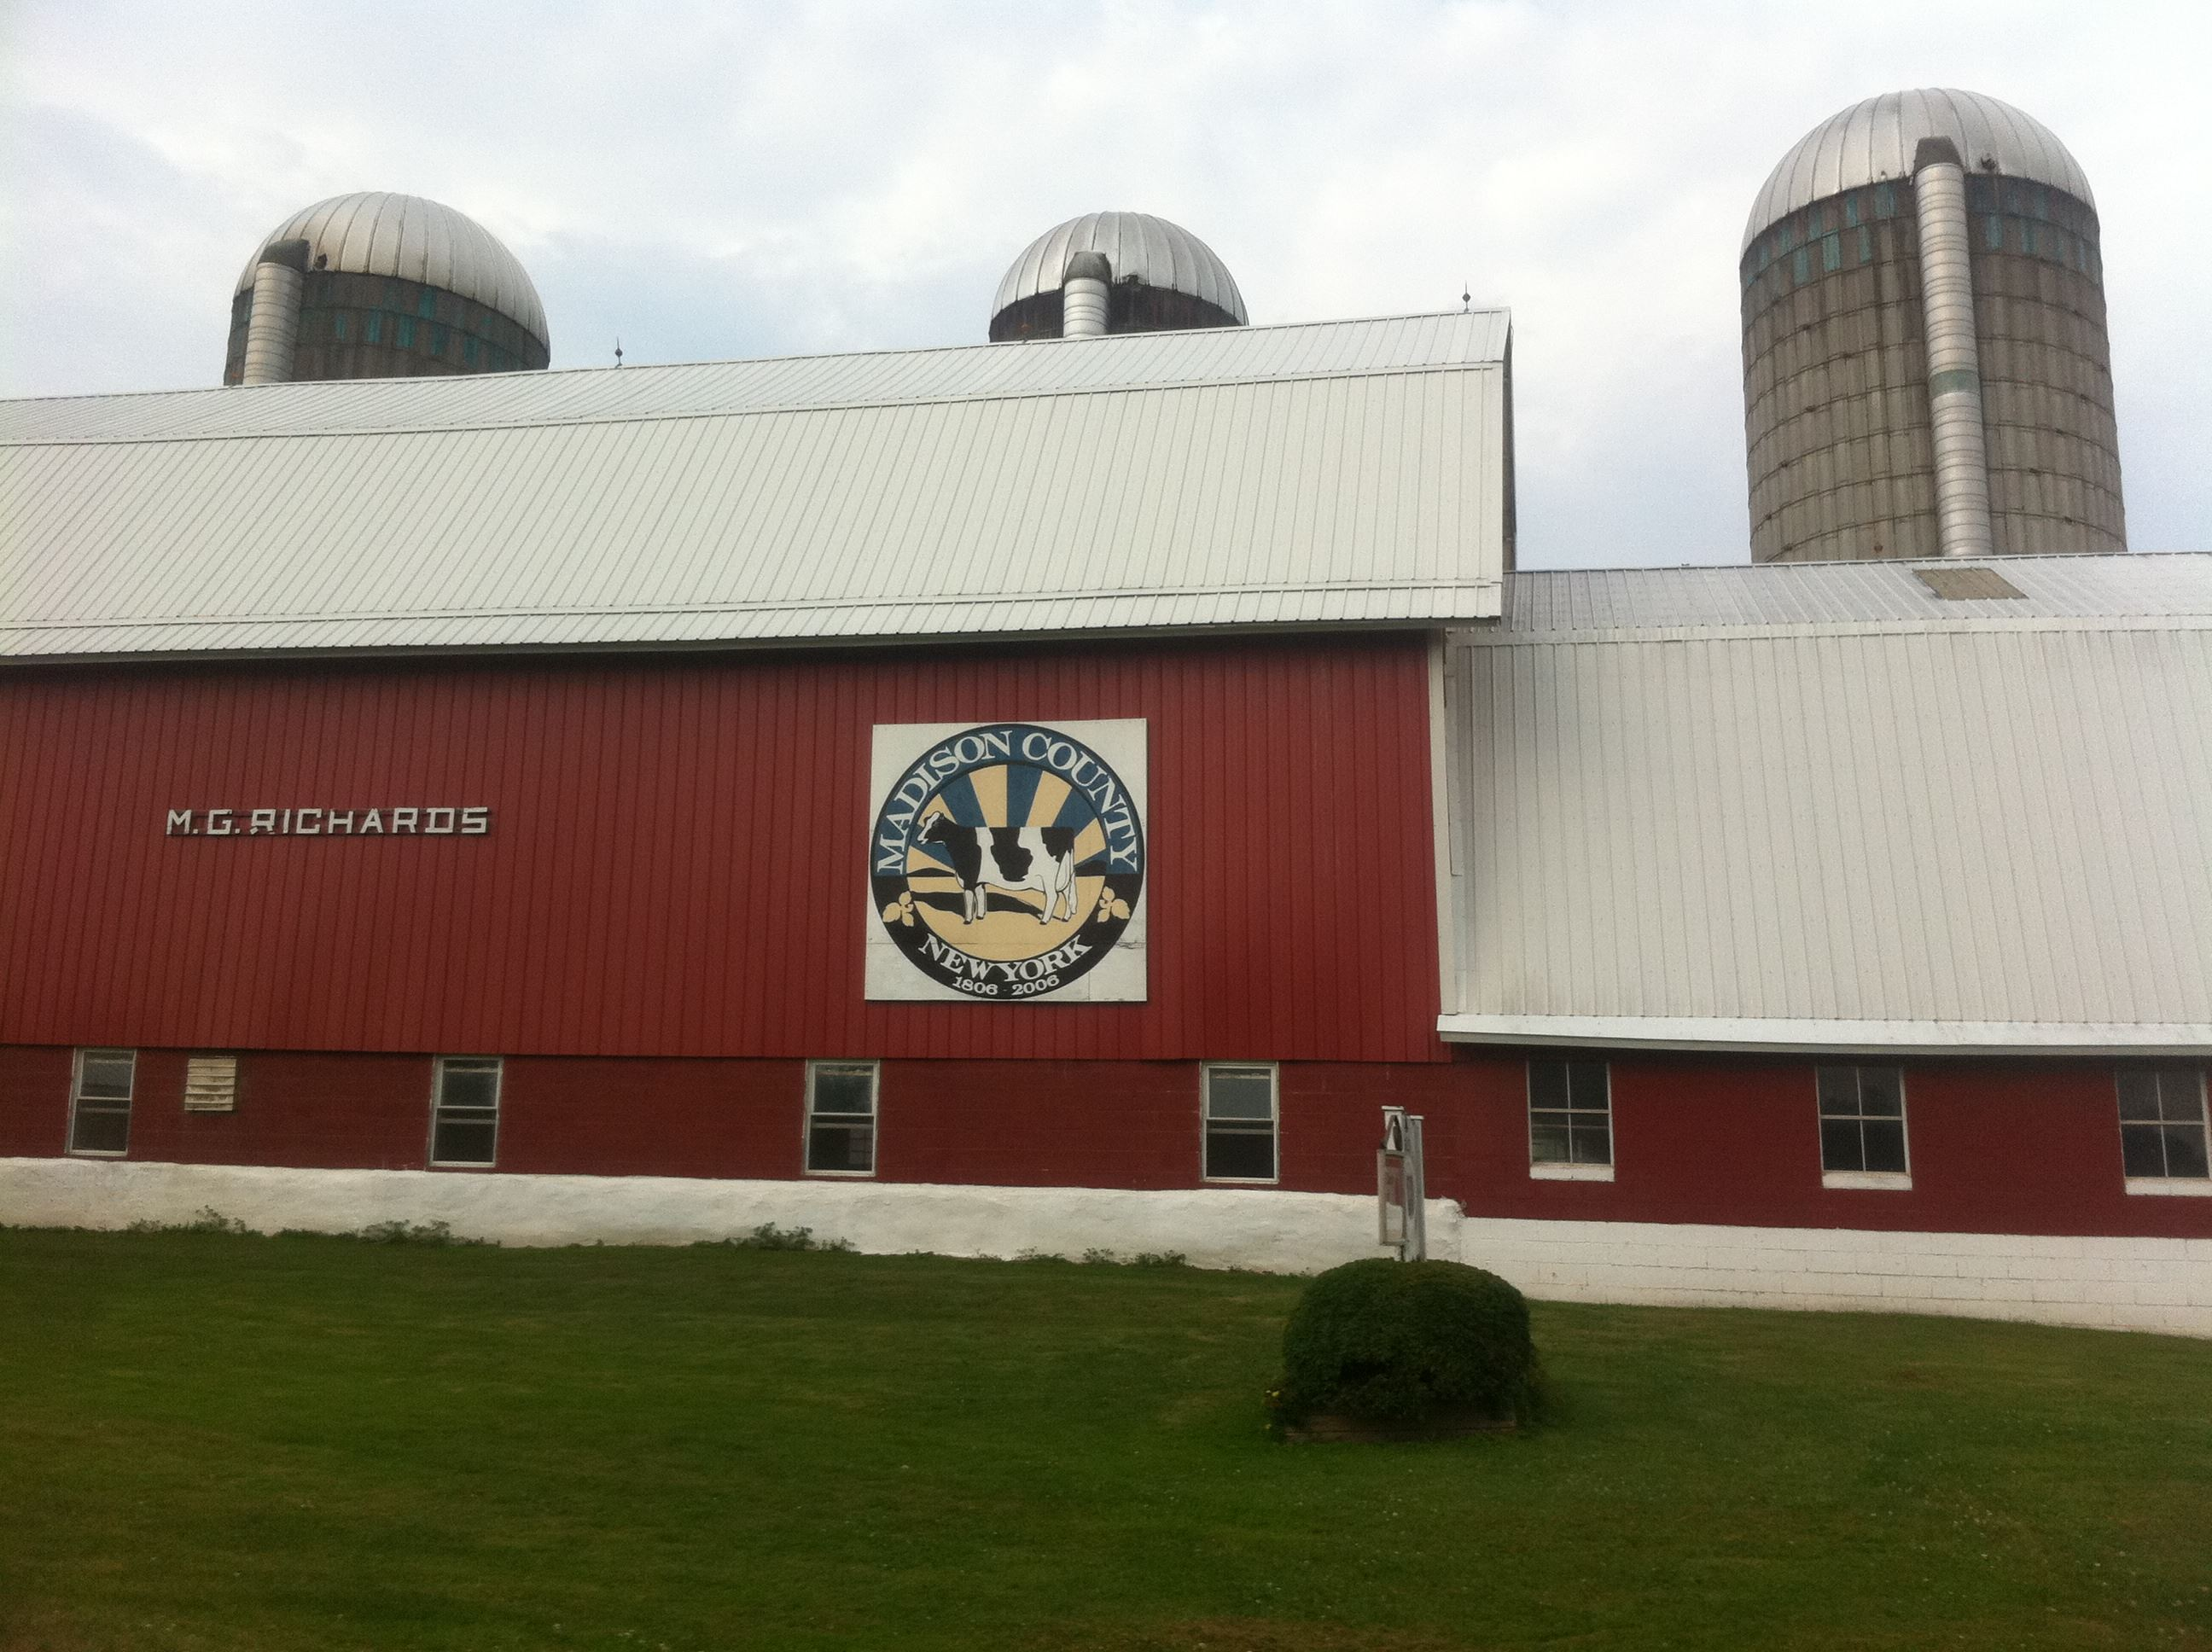 Large red barn with bicentennial seal on the side